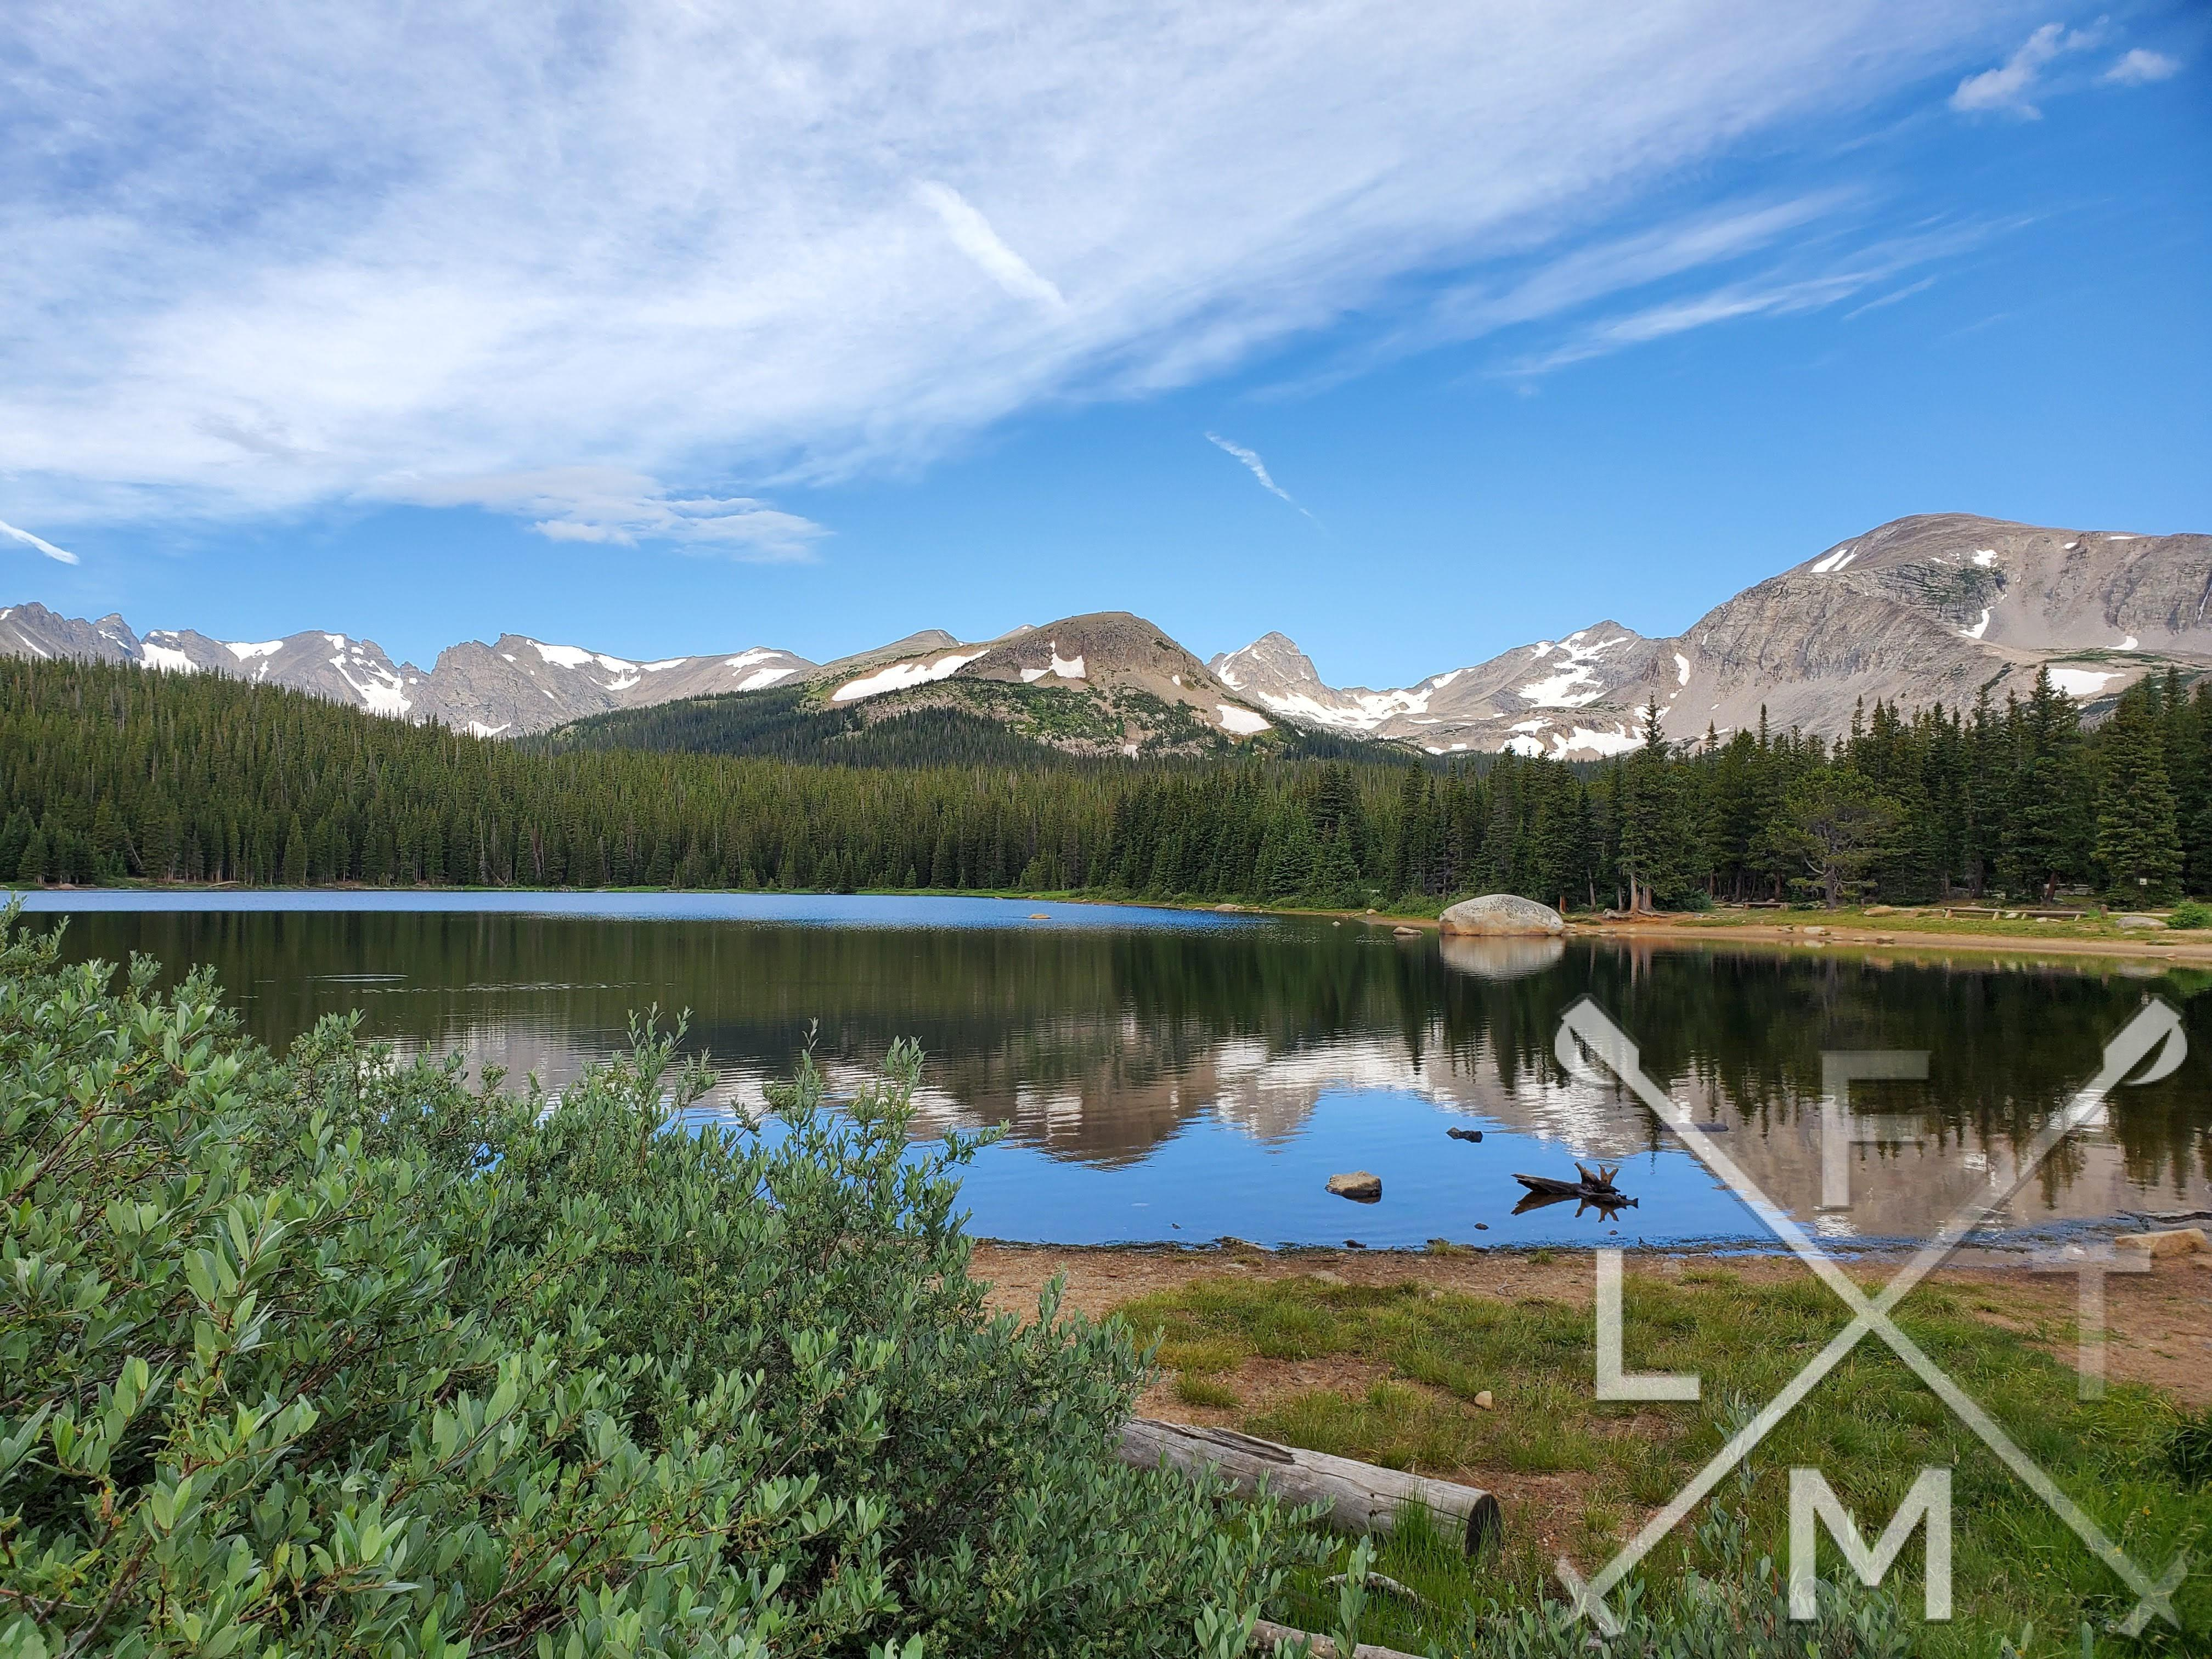 Brainard lake with the Indian Peaks range in the distance.